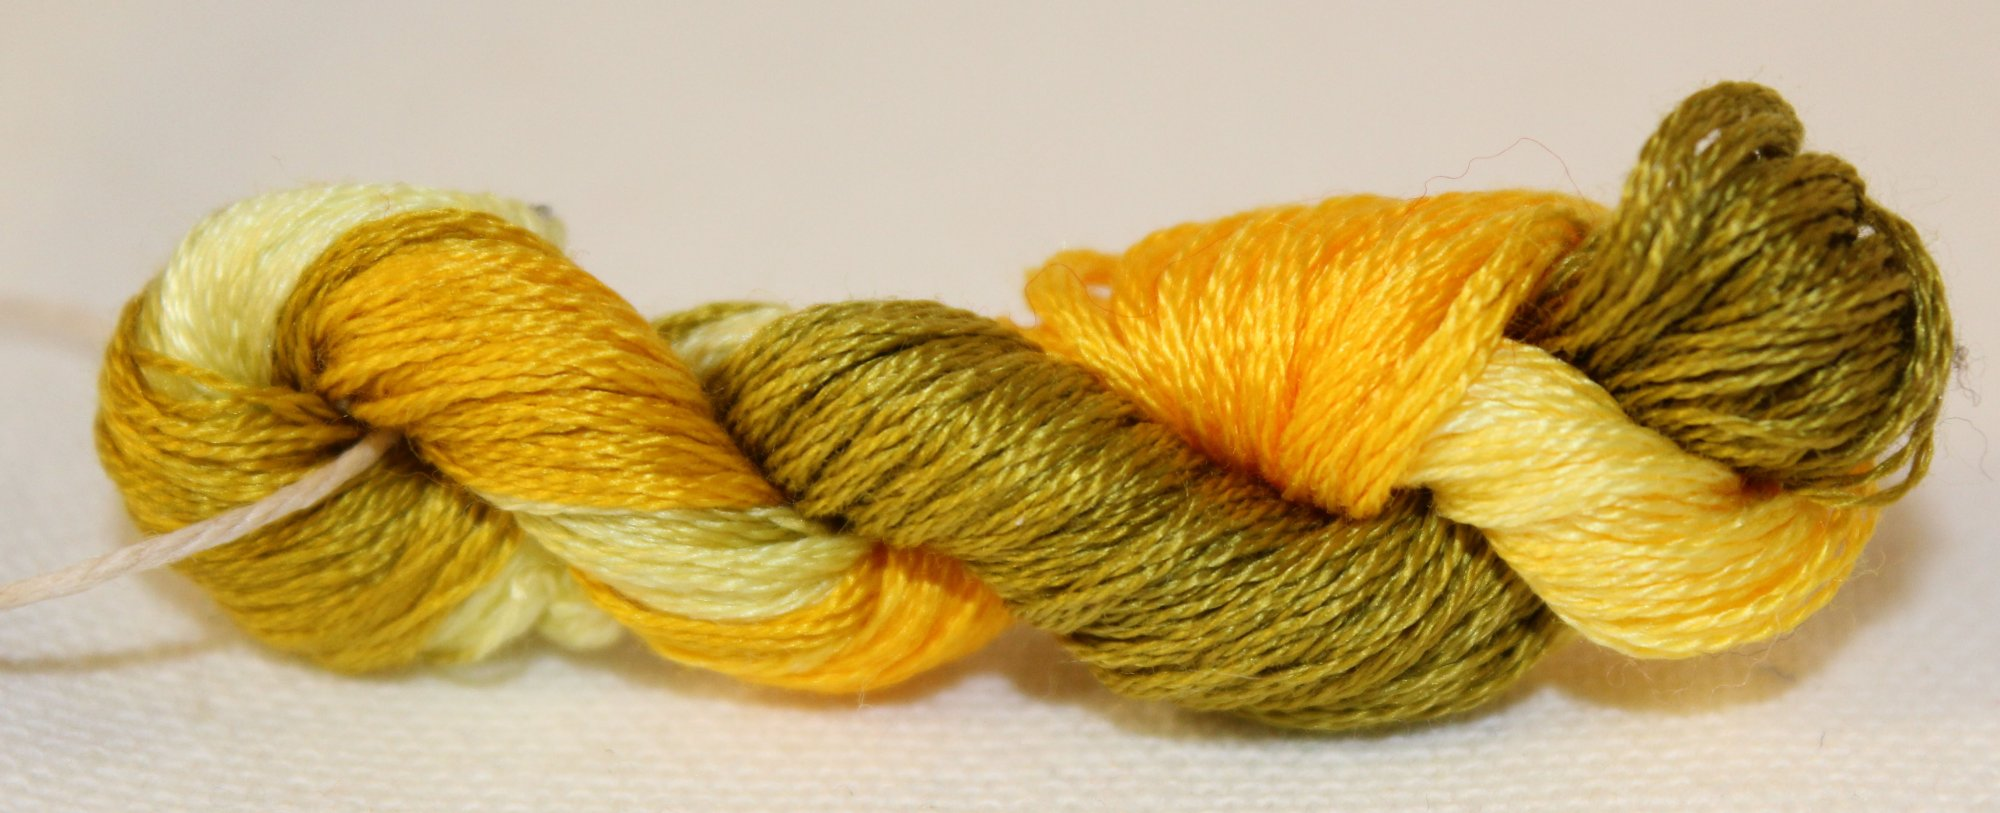 Marigolds- Hand-Dyed Embroidery Floss